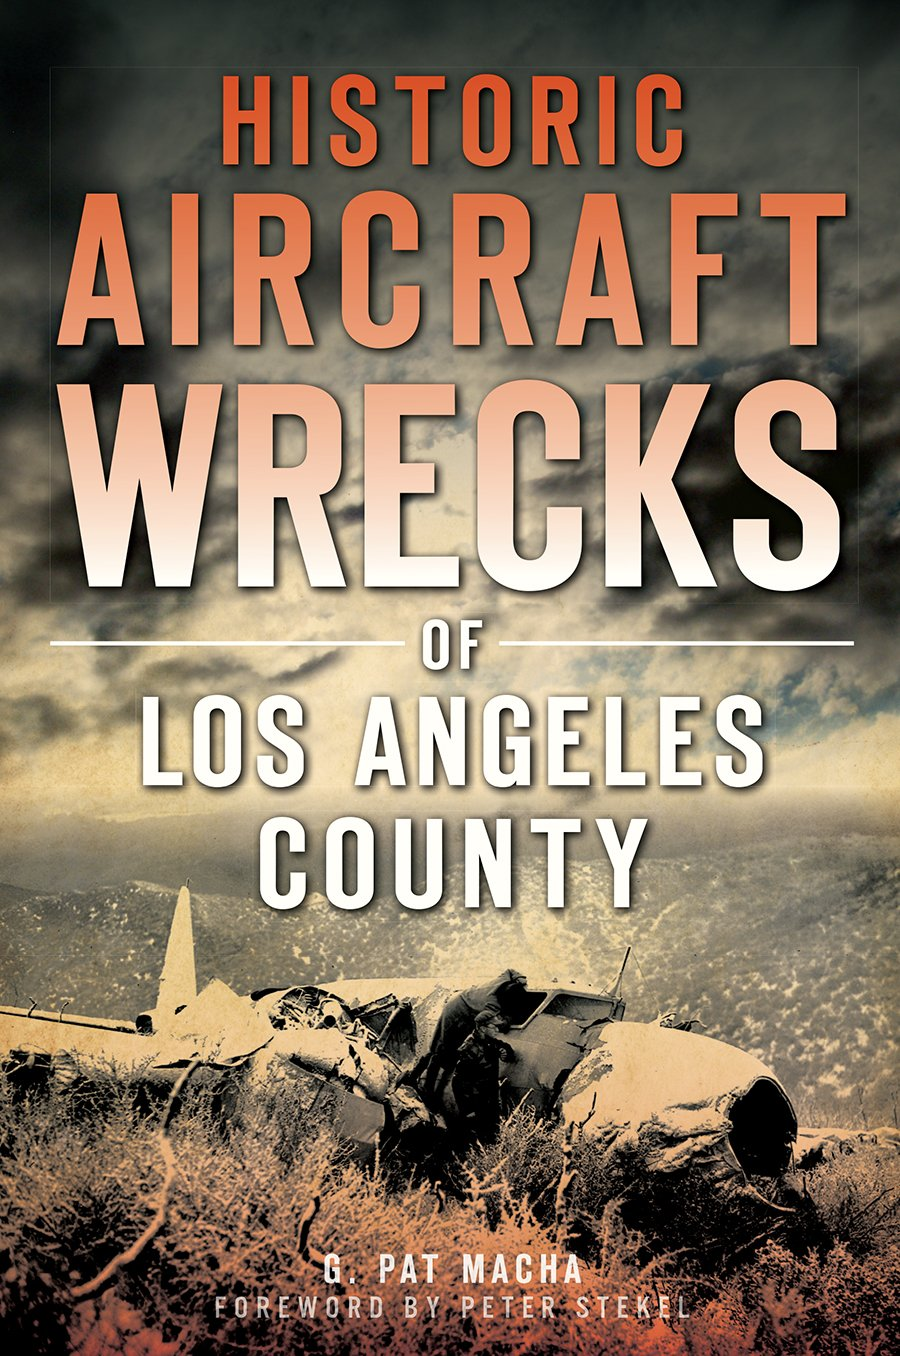 Historic Aircraft Wrecks of Los Angeles County (Disaster) ebook